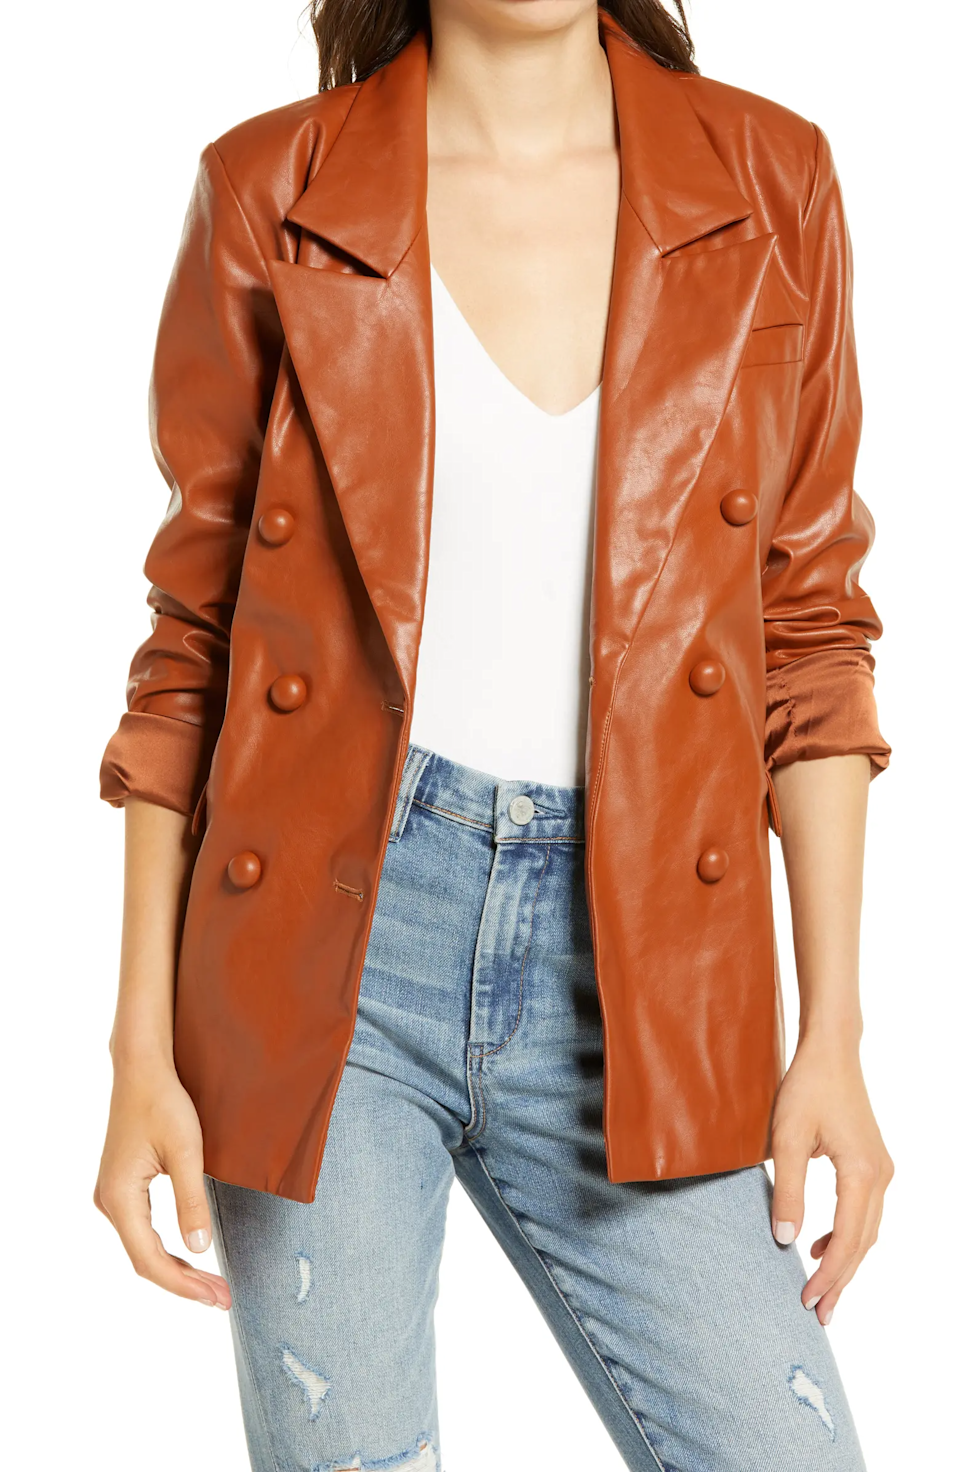 "<br><br><strong>BLANKNYC</strong> The Nightingale Faux Leather Blazer, $, available at <a href=""https://go.skimresources.com/?id=30283X879131&url=https%3A%2F%2Fwww.nordstrom.com%2Fs%2Fblanknyc-the-nightingale-faux-leather-blazer%2F5586887"" rel=""nofollow noopener"" target=""_blank"" data-ylk=""slk:Nordstrom"" class=""link rapid-noclick-resp"">Nordstrom</a>"